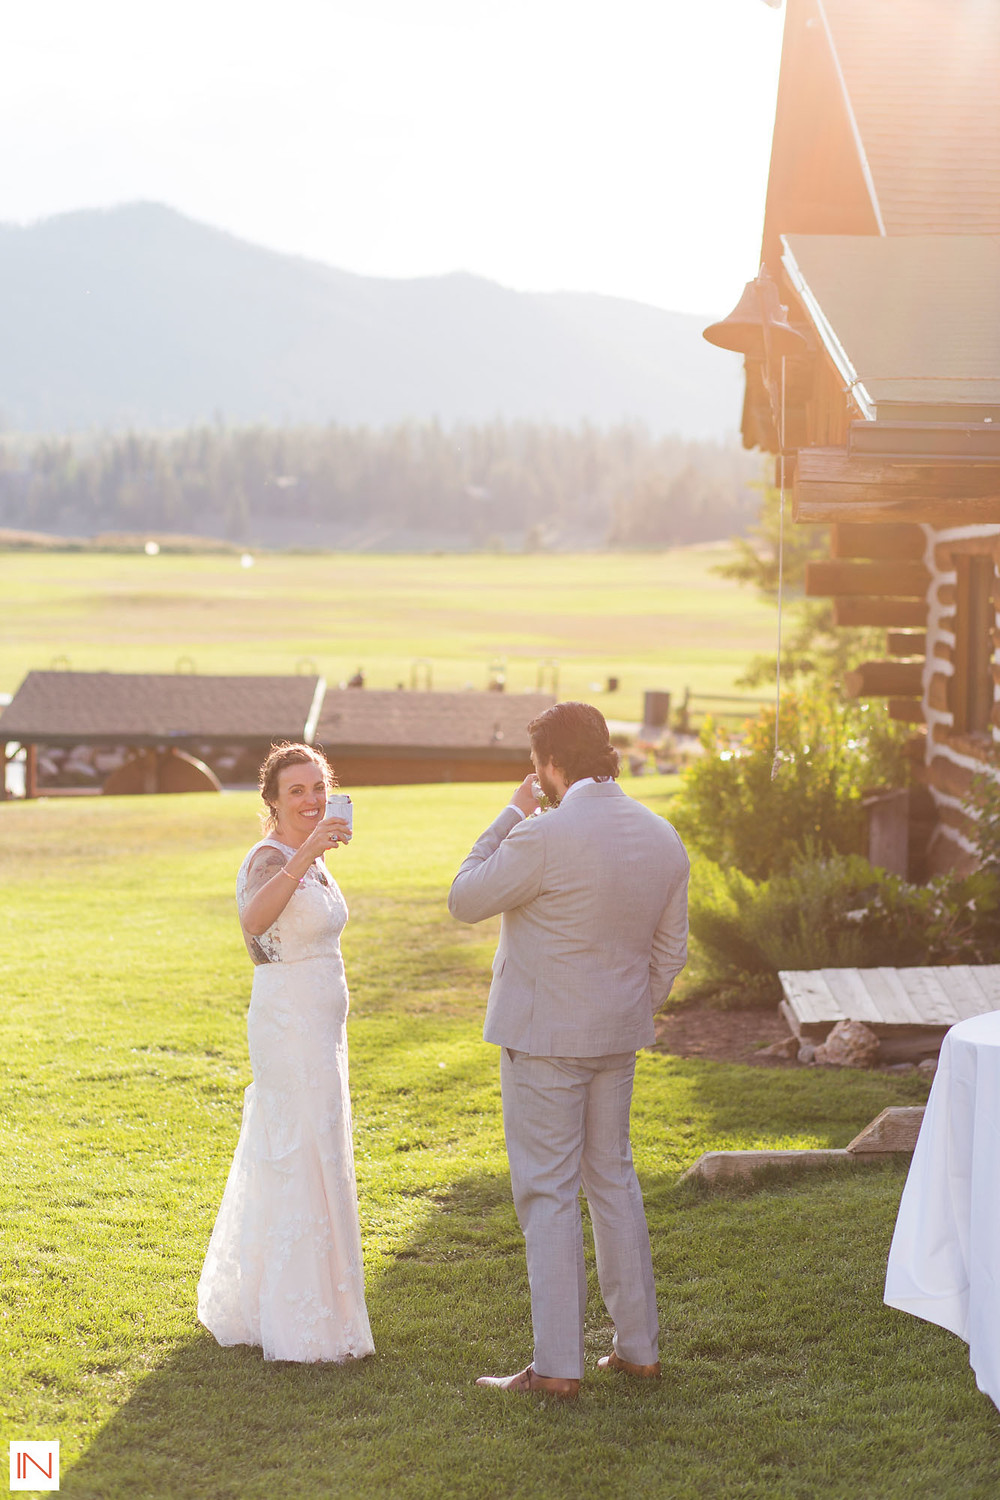 Keystone Wedding - Keystone Ranch Wedding - Bride and Groom